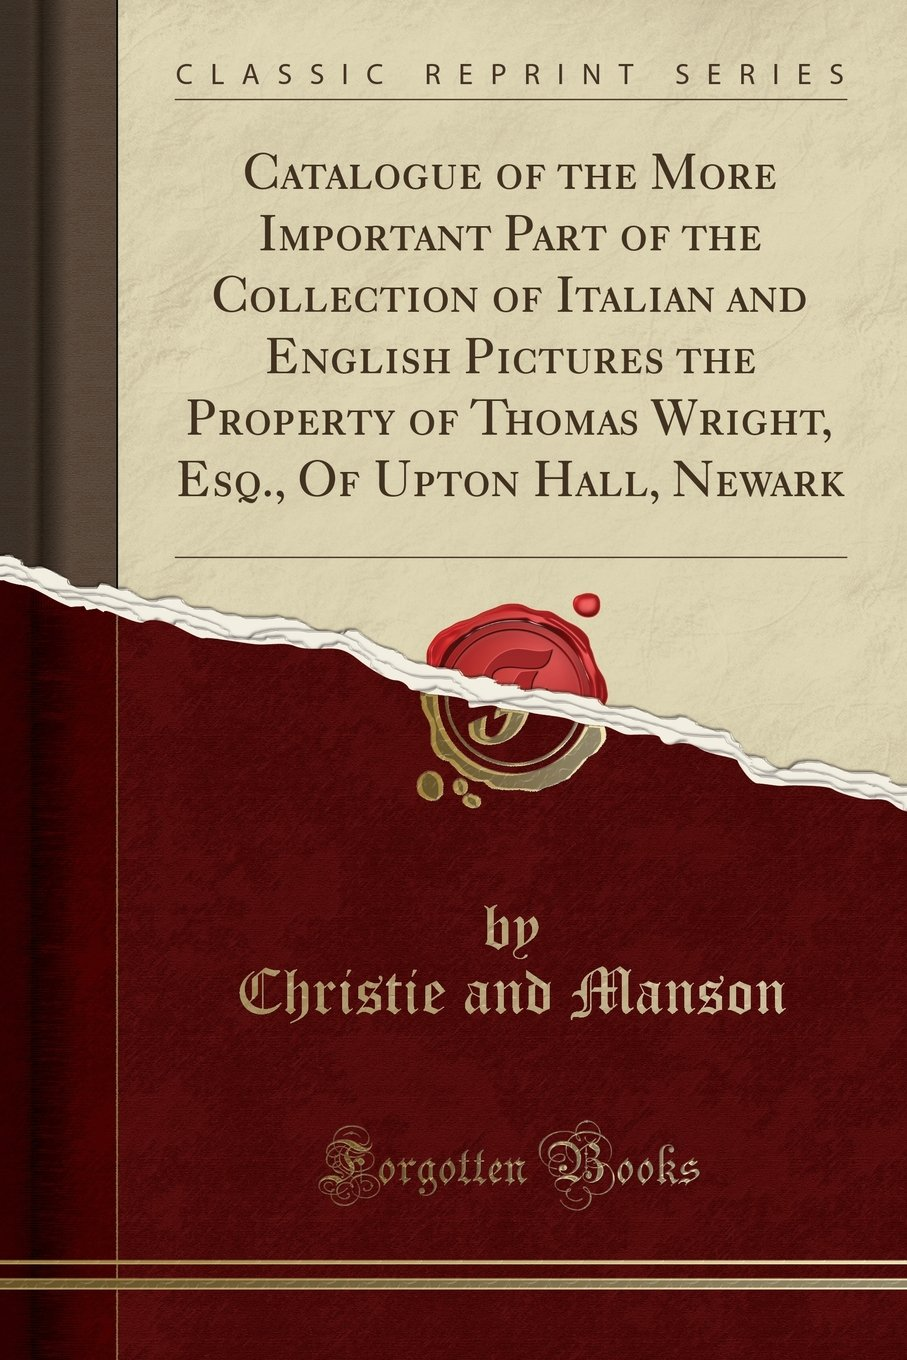 Catalogue of the More Important Part of the Collection of Italian and English Pictures the Property of Thomas Wright, Esq., Of Upton Hall, Newark (Classic Reprint) pdf epub